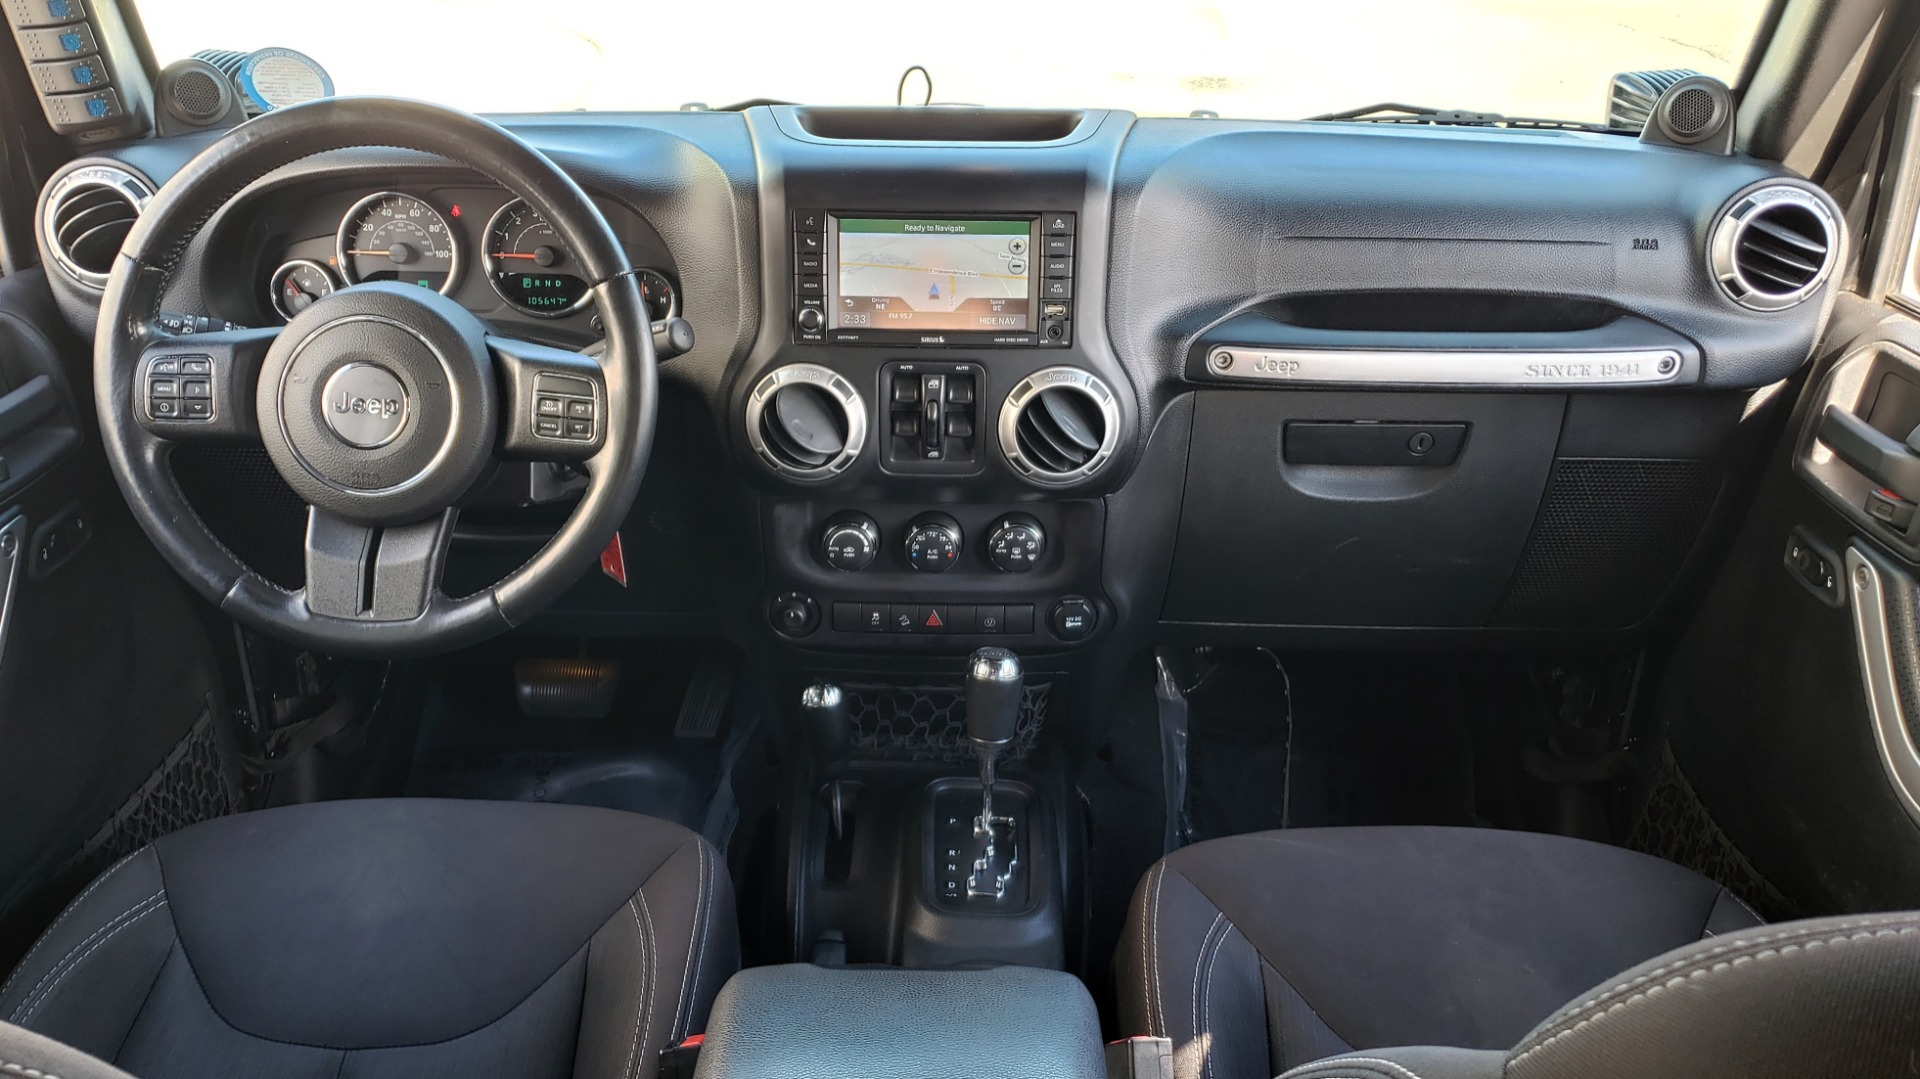 Used 2014 Jeep WRANGLER UNLIMITED SAHARA 4X4 / 3.6L V6 / 5-SPD AUTO / NAV / TOW PKG / SOFT-TOP for sale $24,795 at Formula Imports in Charlotte NC 28227 75